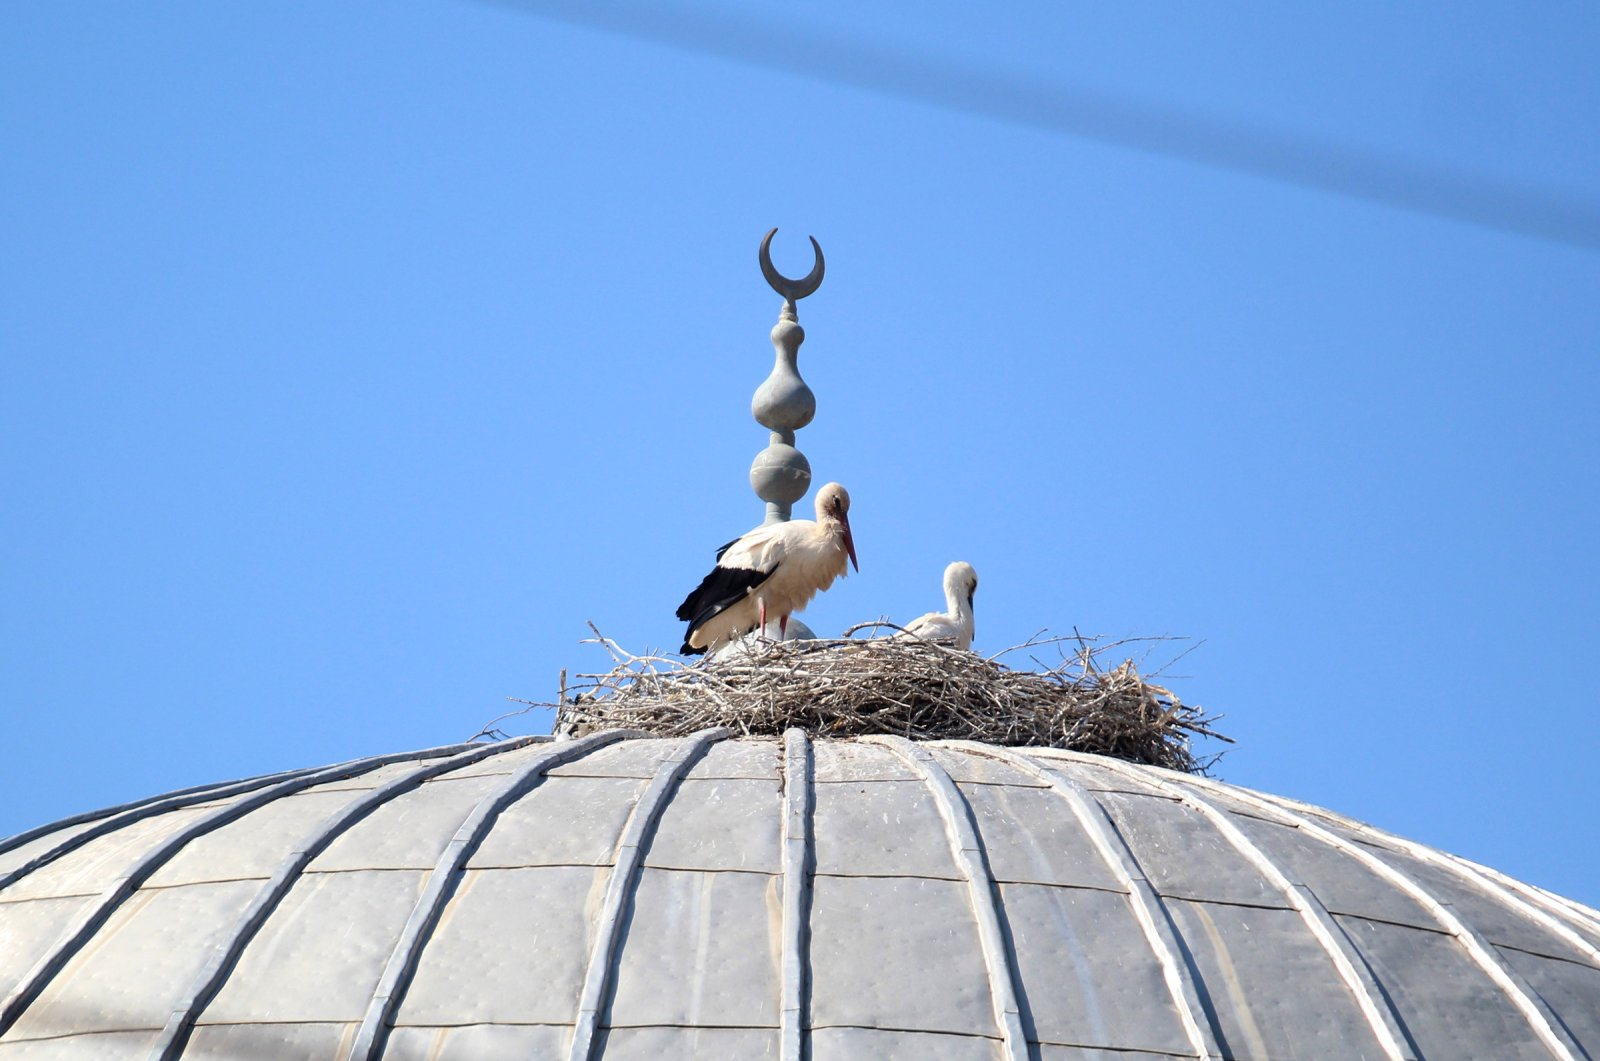 The stork pair nests on the dome of a mosque in Antalya, Turkey, June 16, 2020. (IHA Photo)